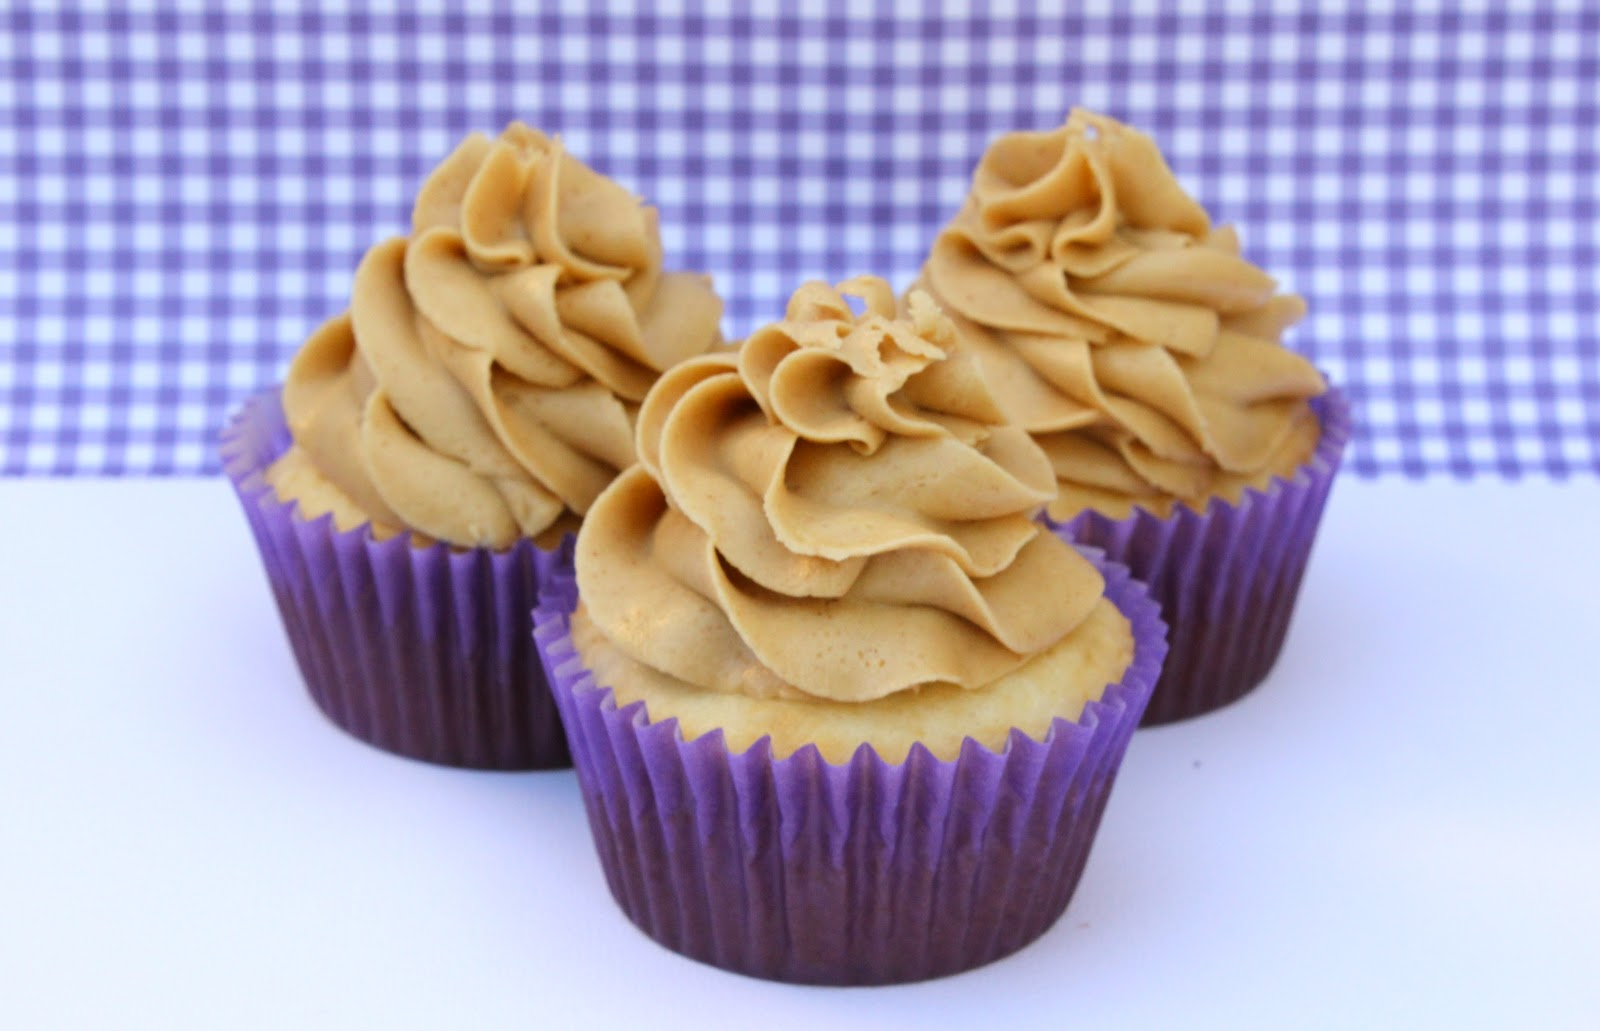 MBC: Peanut Butter and Jelly Cupcakes